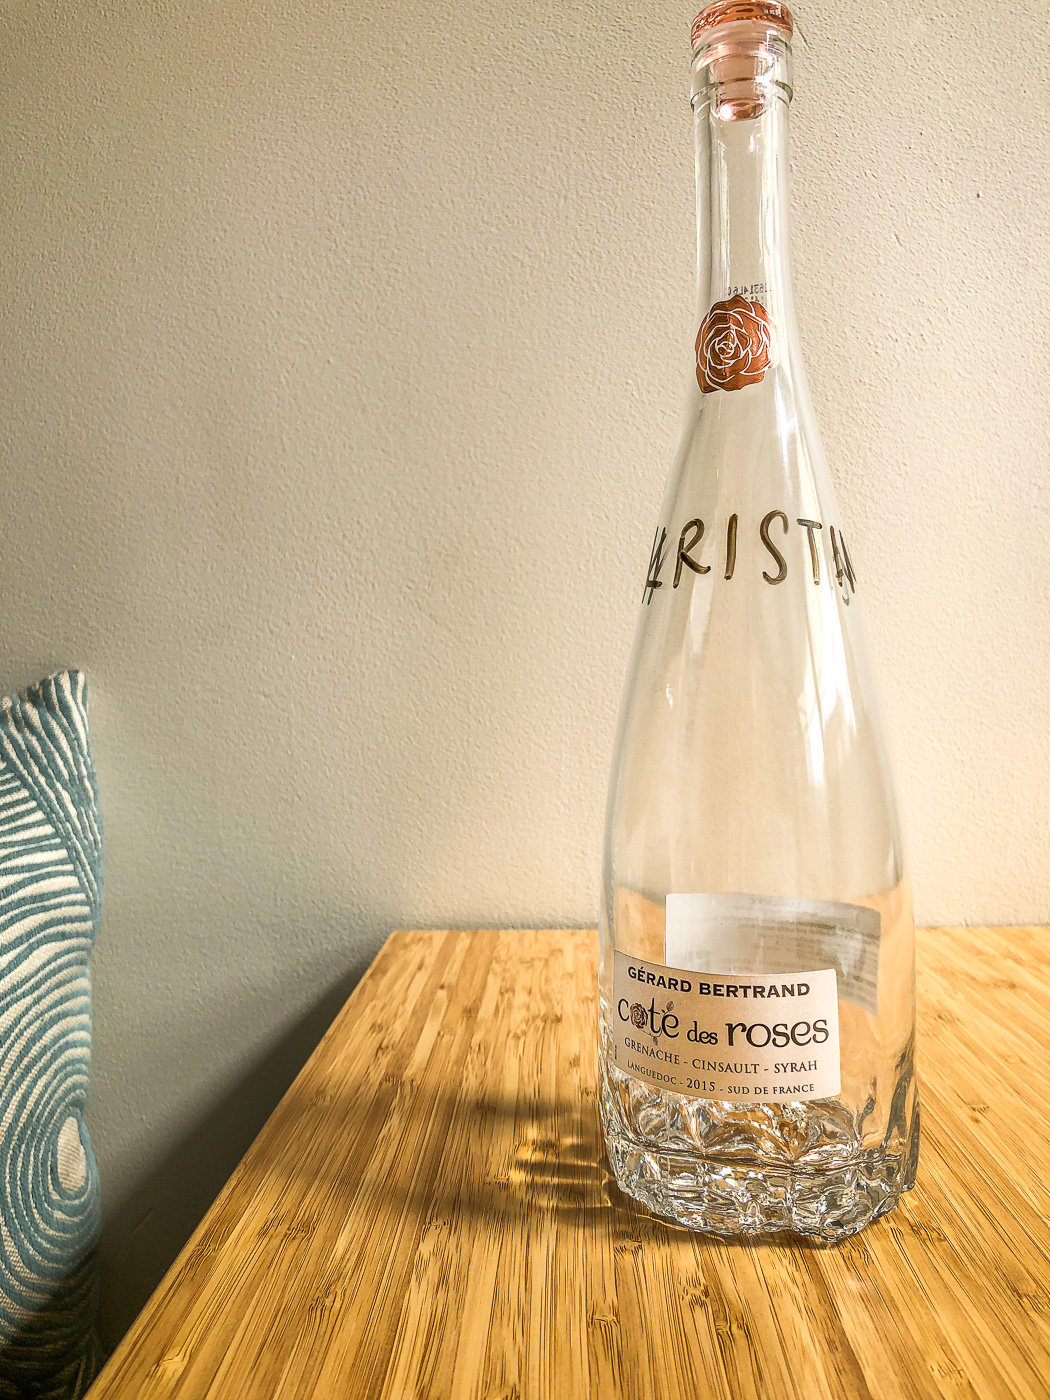 Glass bottle on bamboo table that has the name Kristine written on it